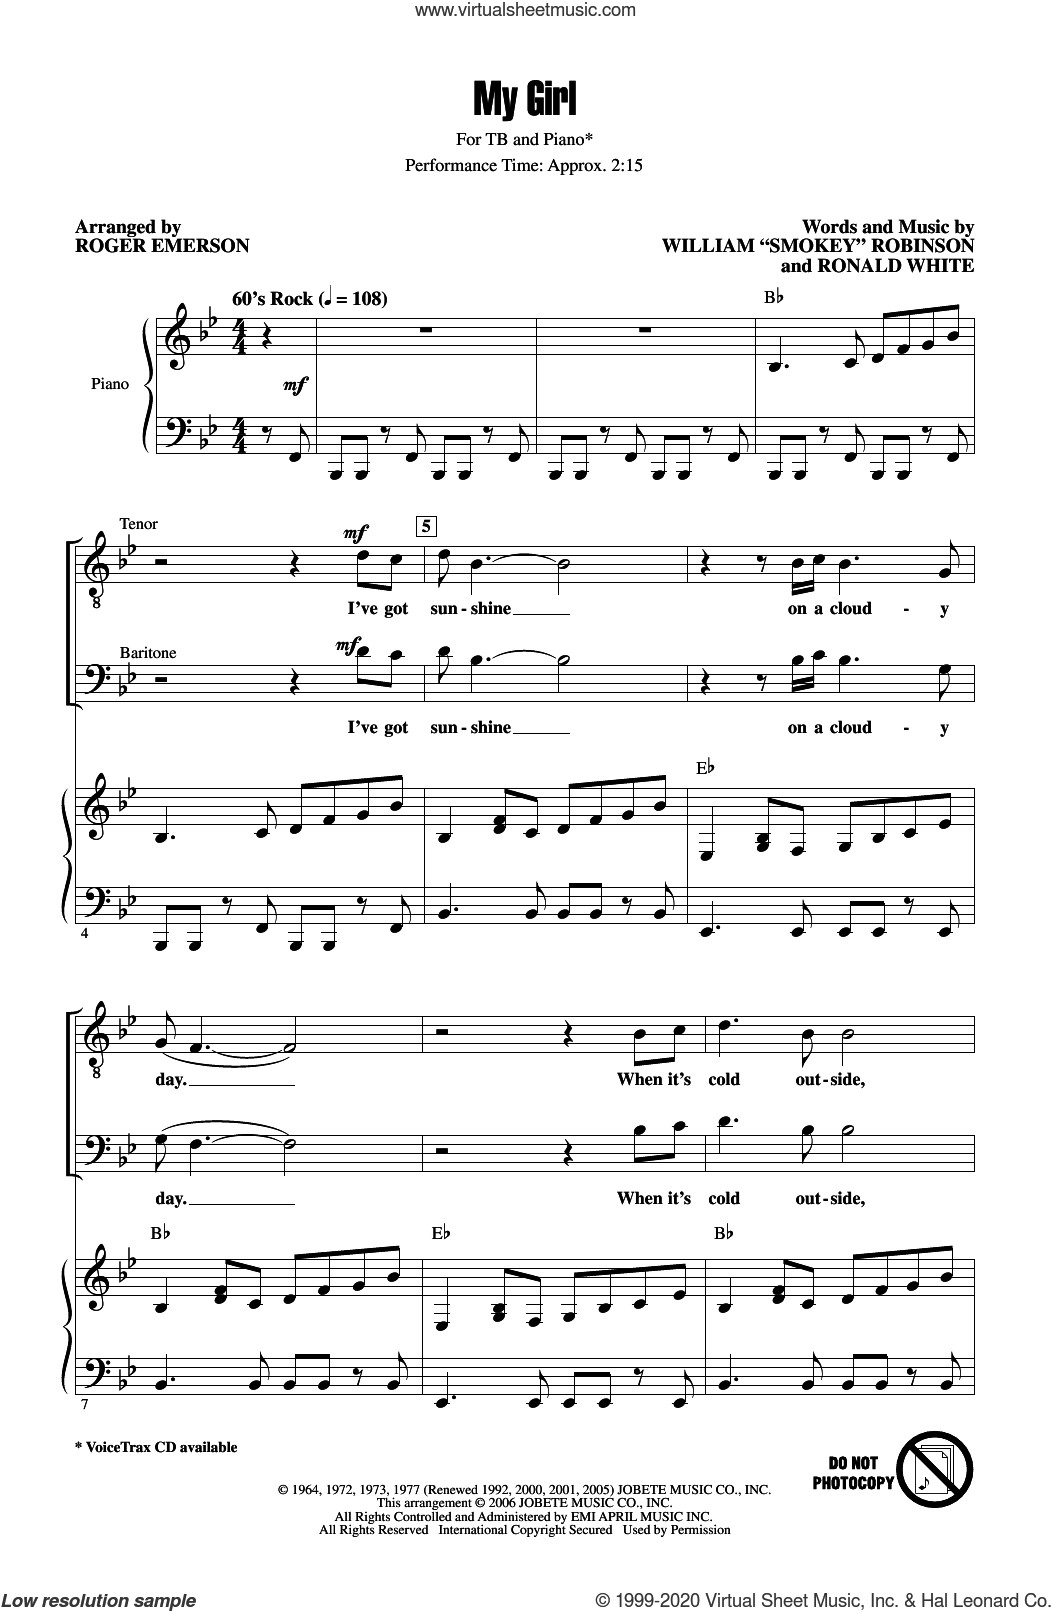 My Girl (arr. Roger Emerson) sheet music for choir (TB: tenor, bass) by The Temptations, Roger Emerson and Ronald White, intermediate skill level